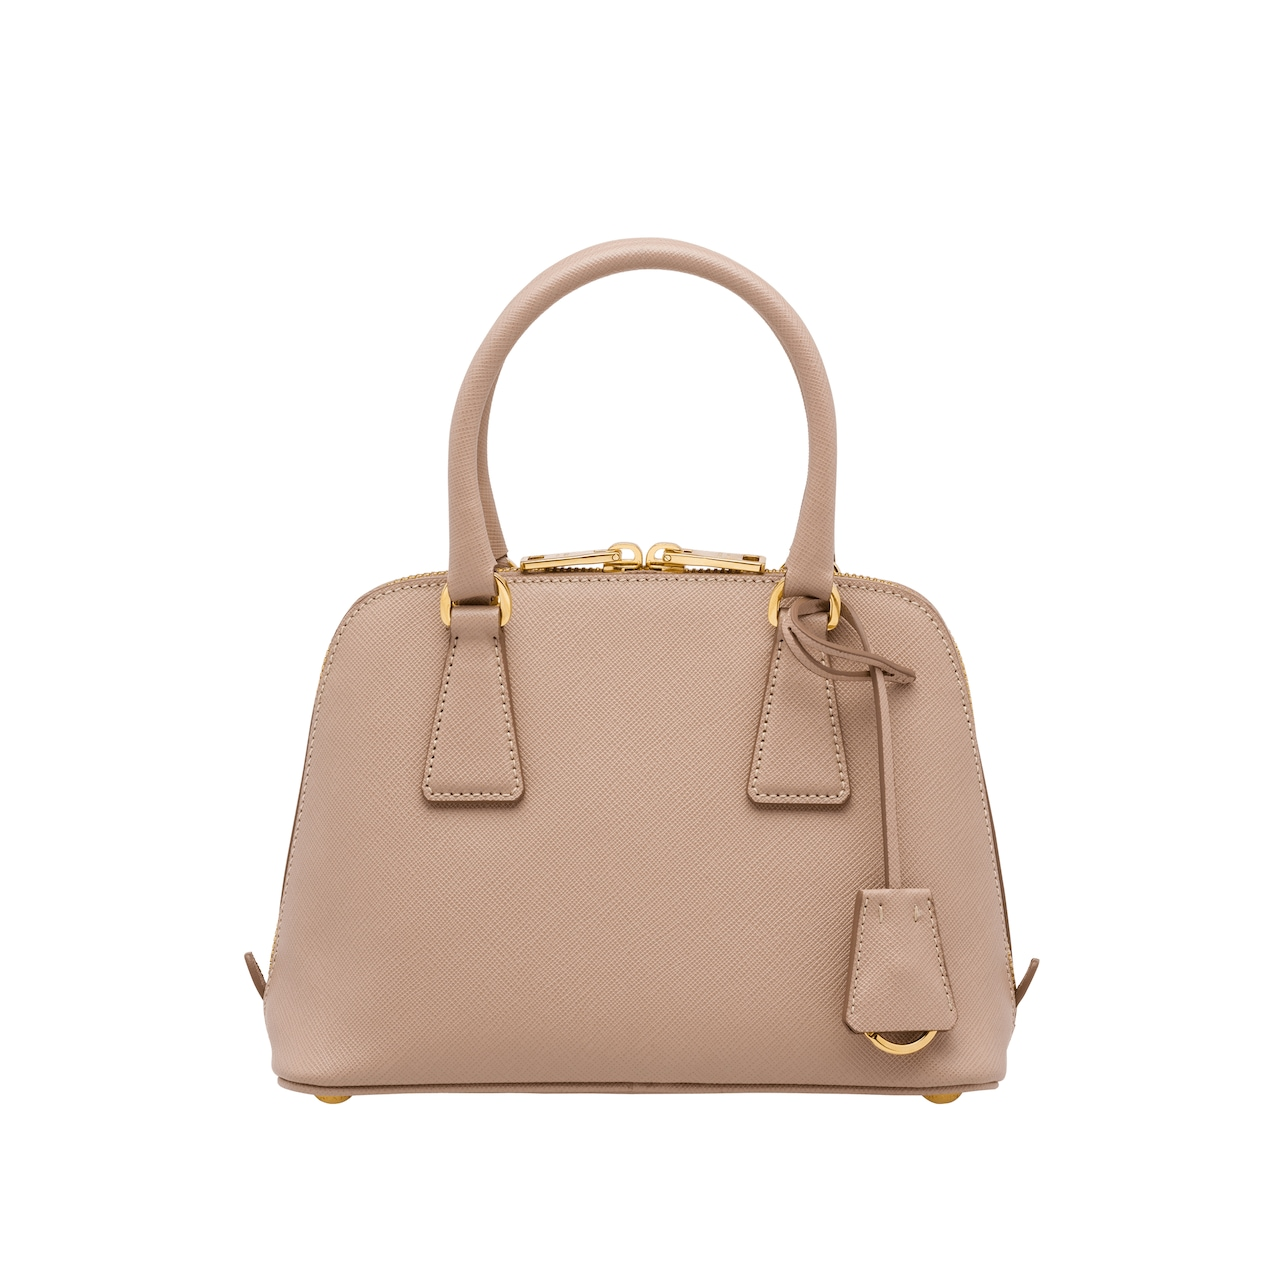 Prada Promenade Saffiano leather bag